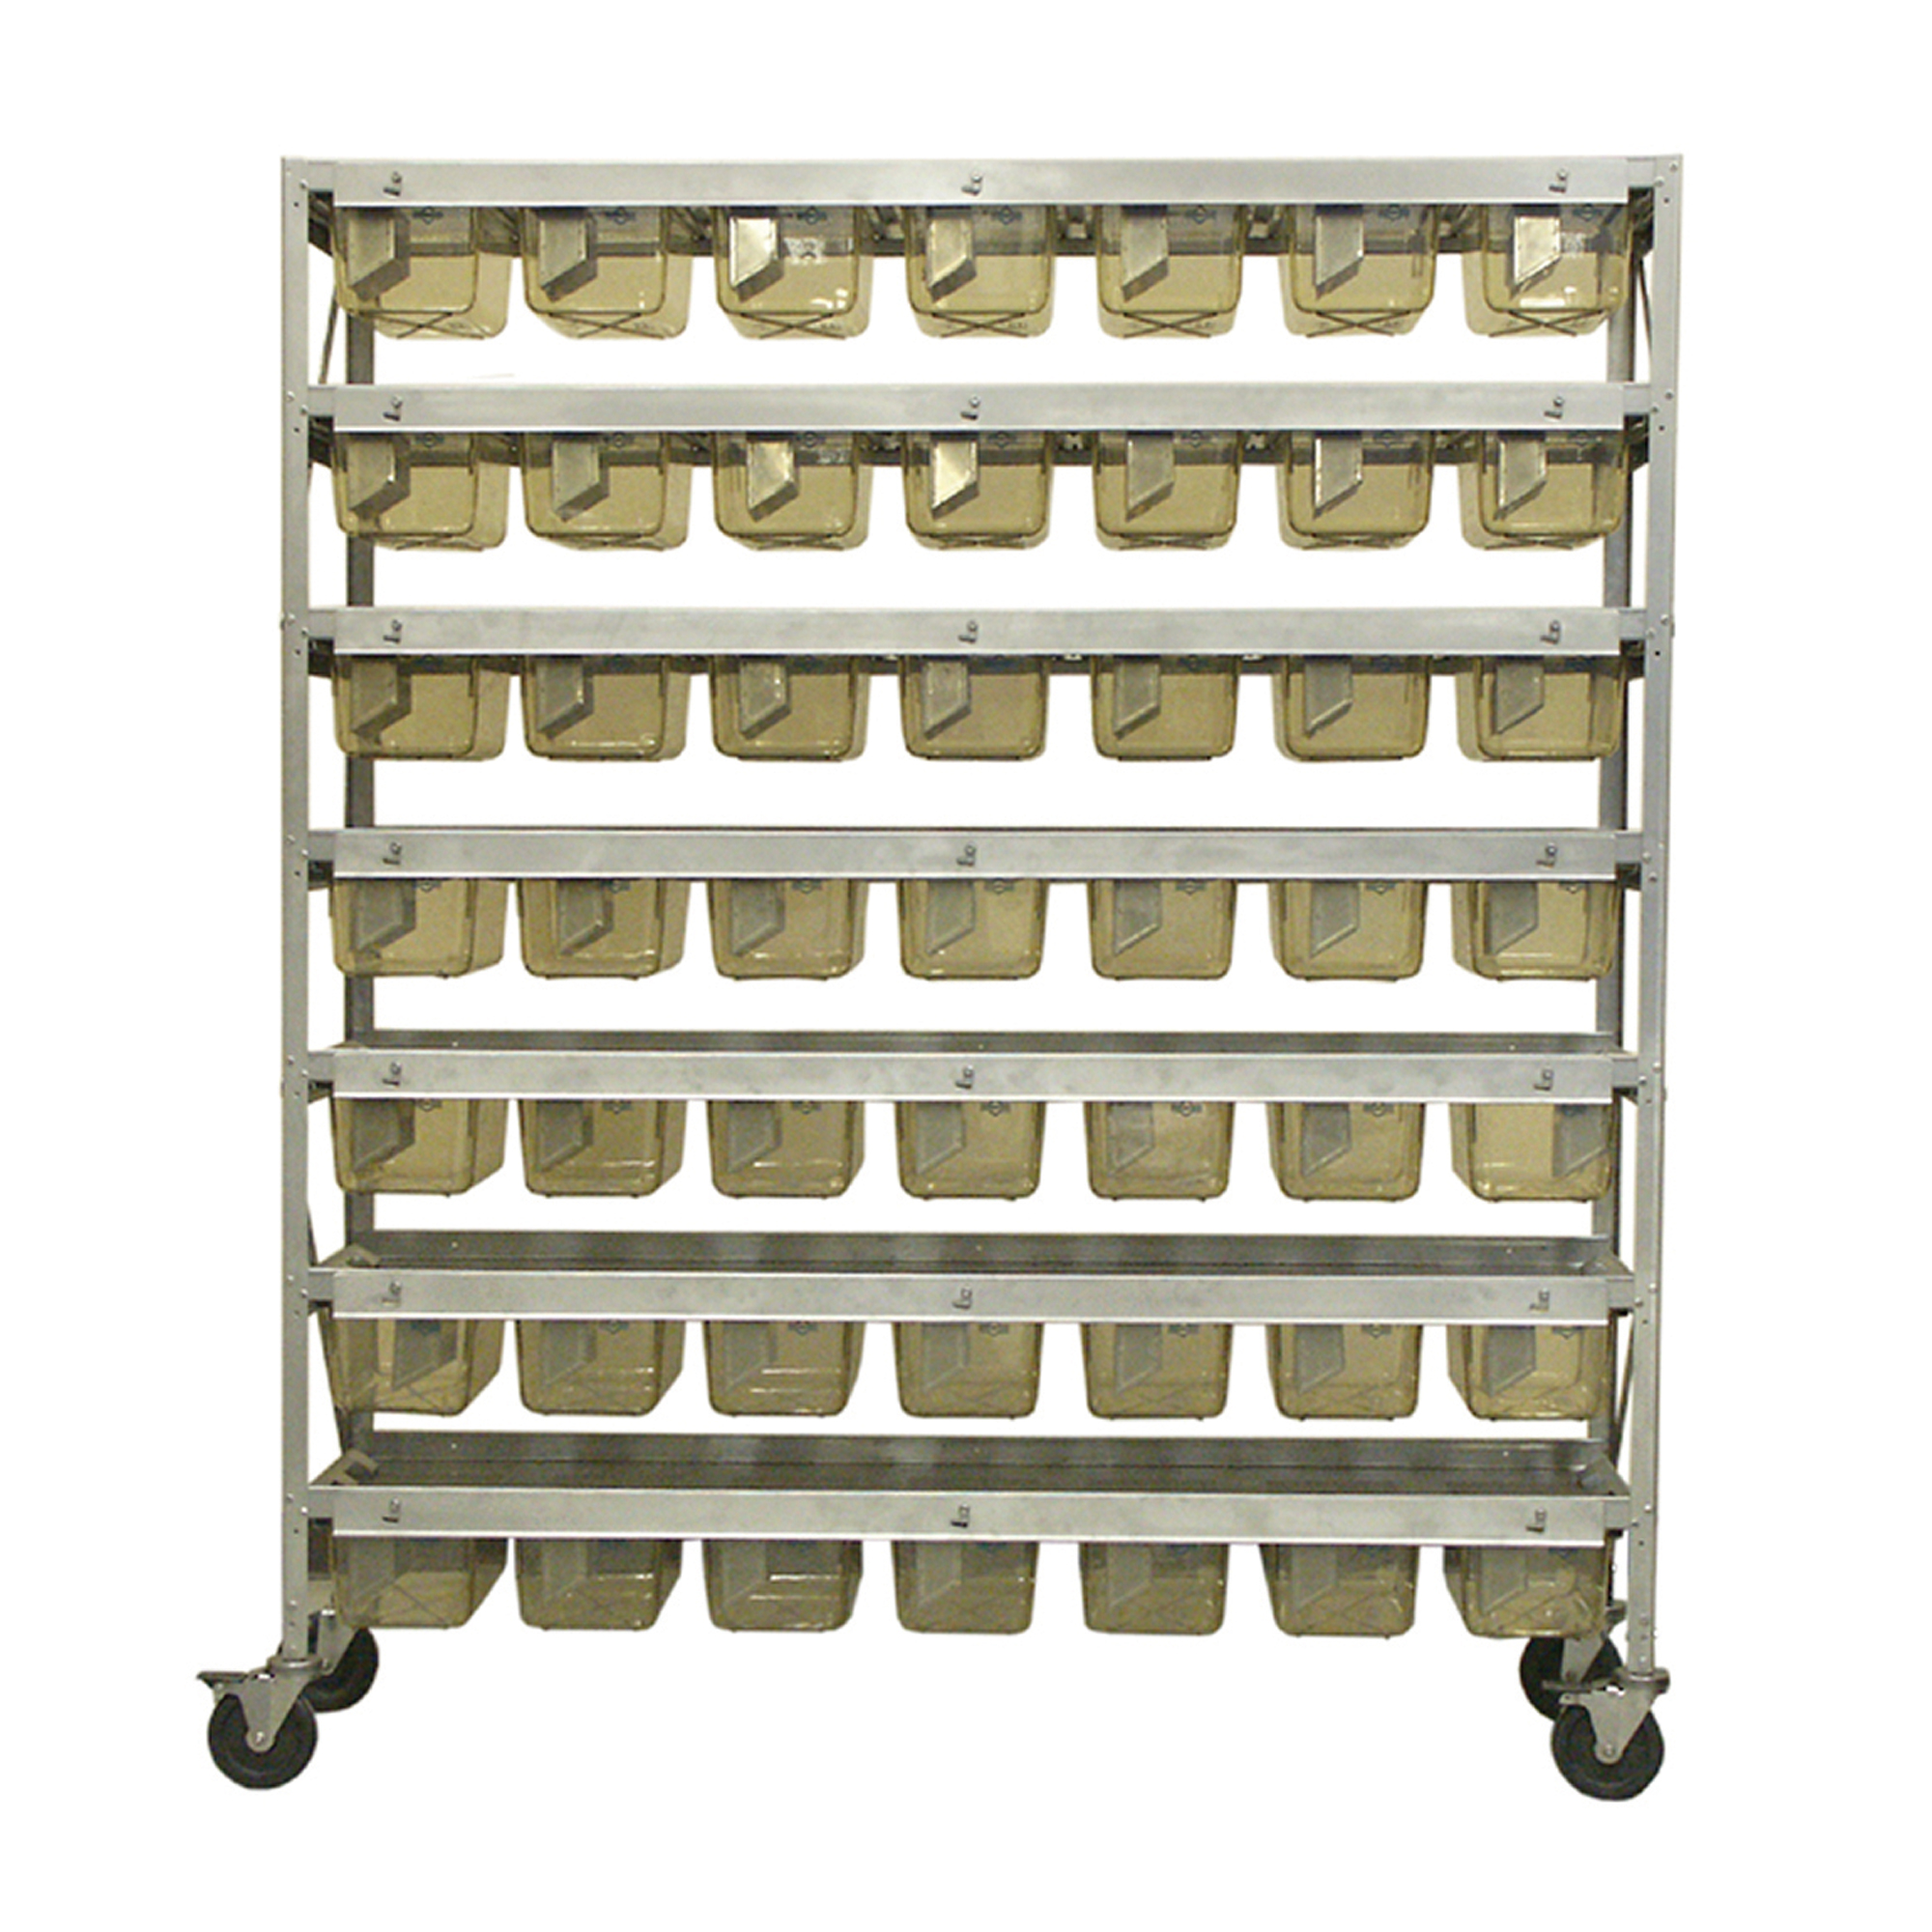 shelving modular keg corner aluminum unit storage three shelf rack example su racks system